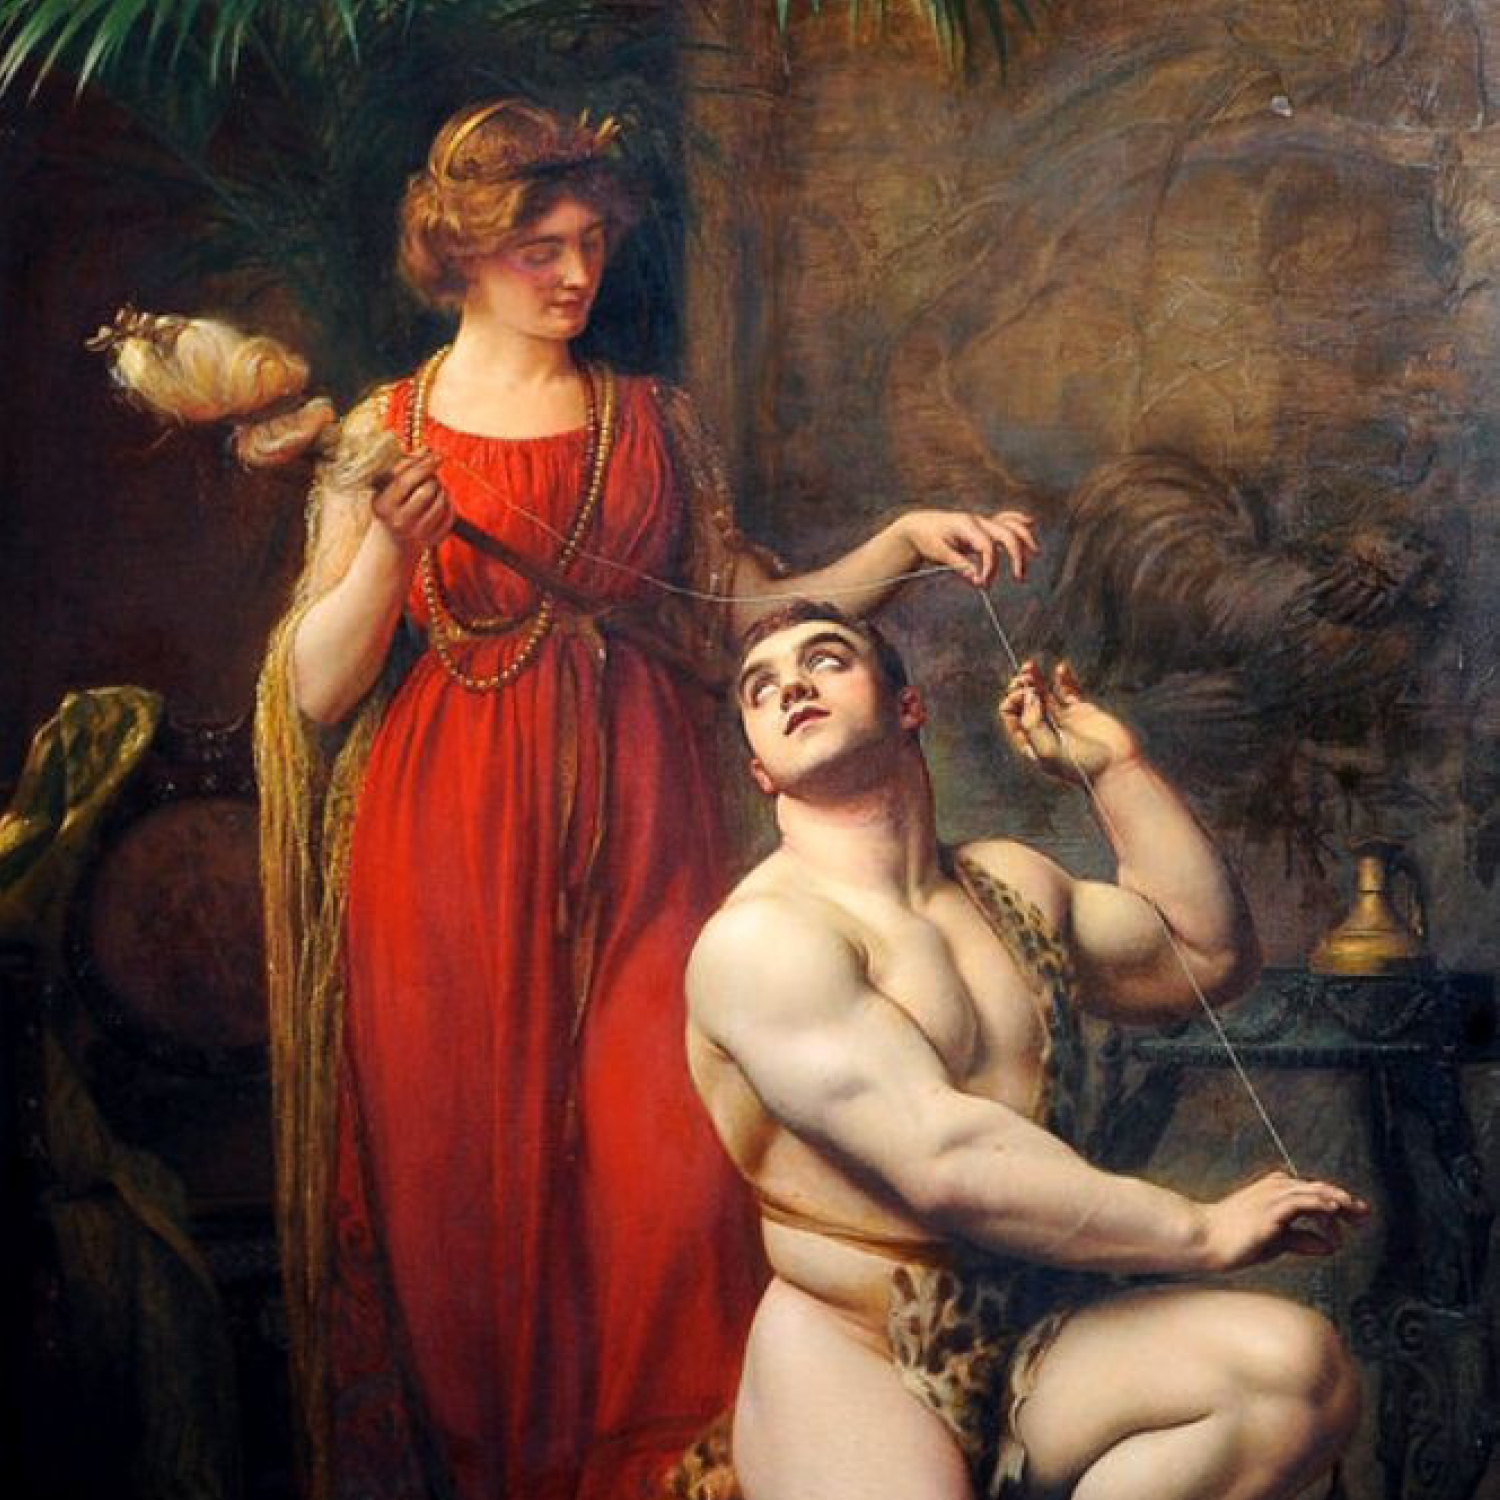 Hercules at the Feet of Omphale by Gustave Courtois